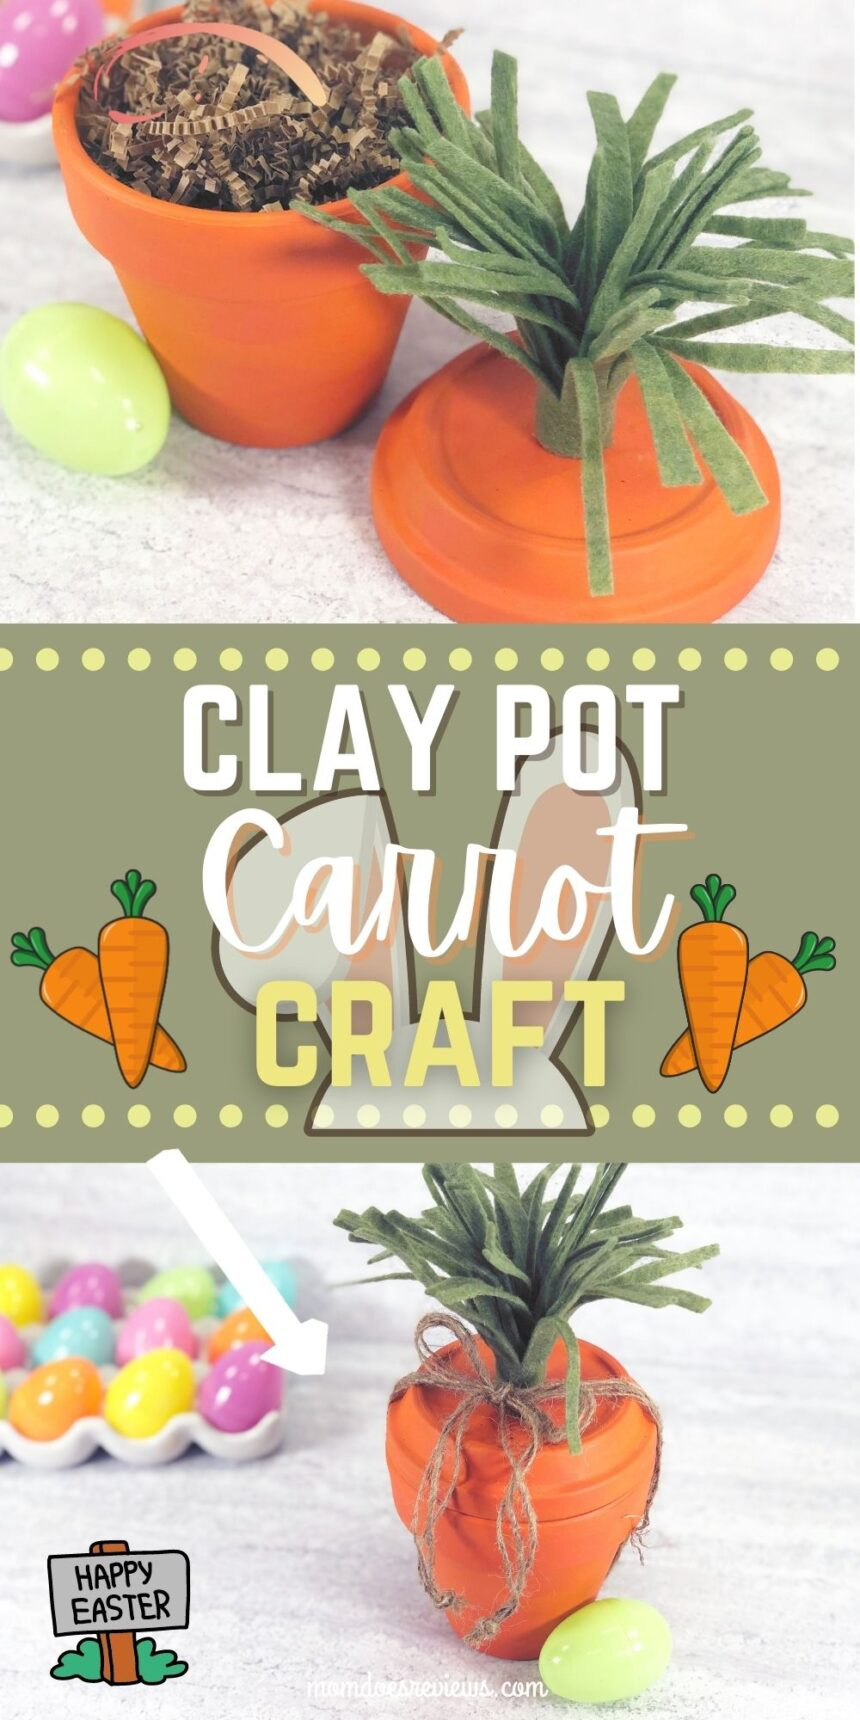 Clay Pot Carrot Craft for Easter Fun #crafts #eastercraft